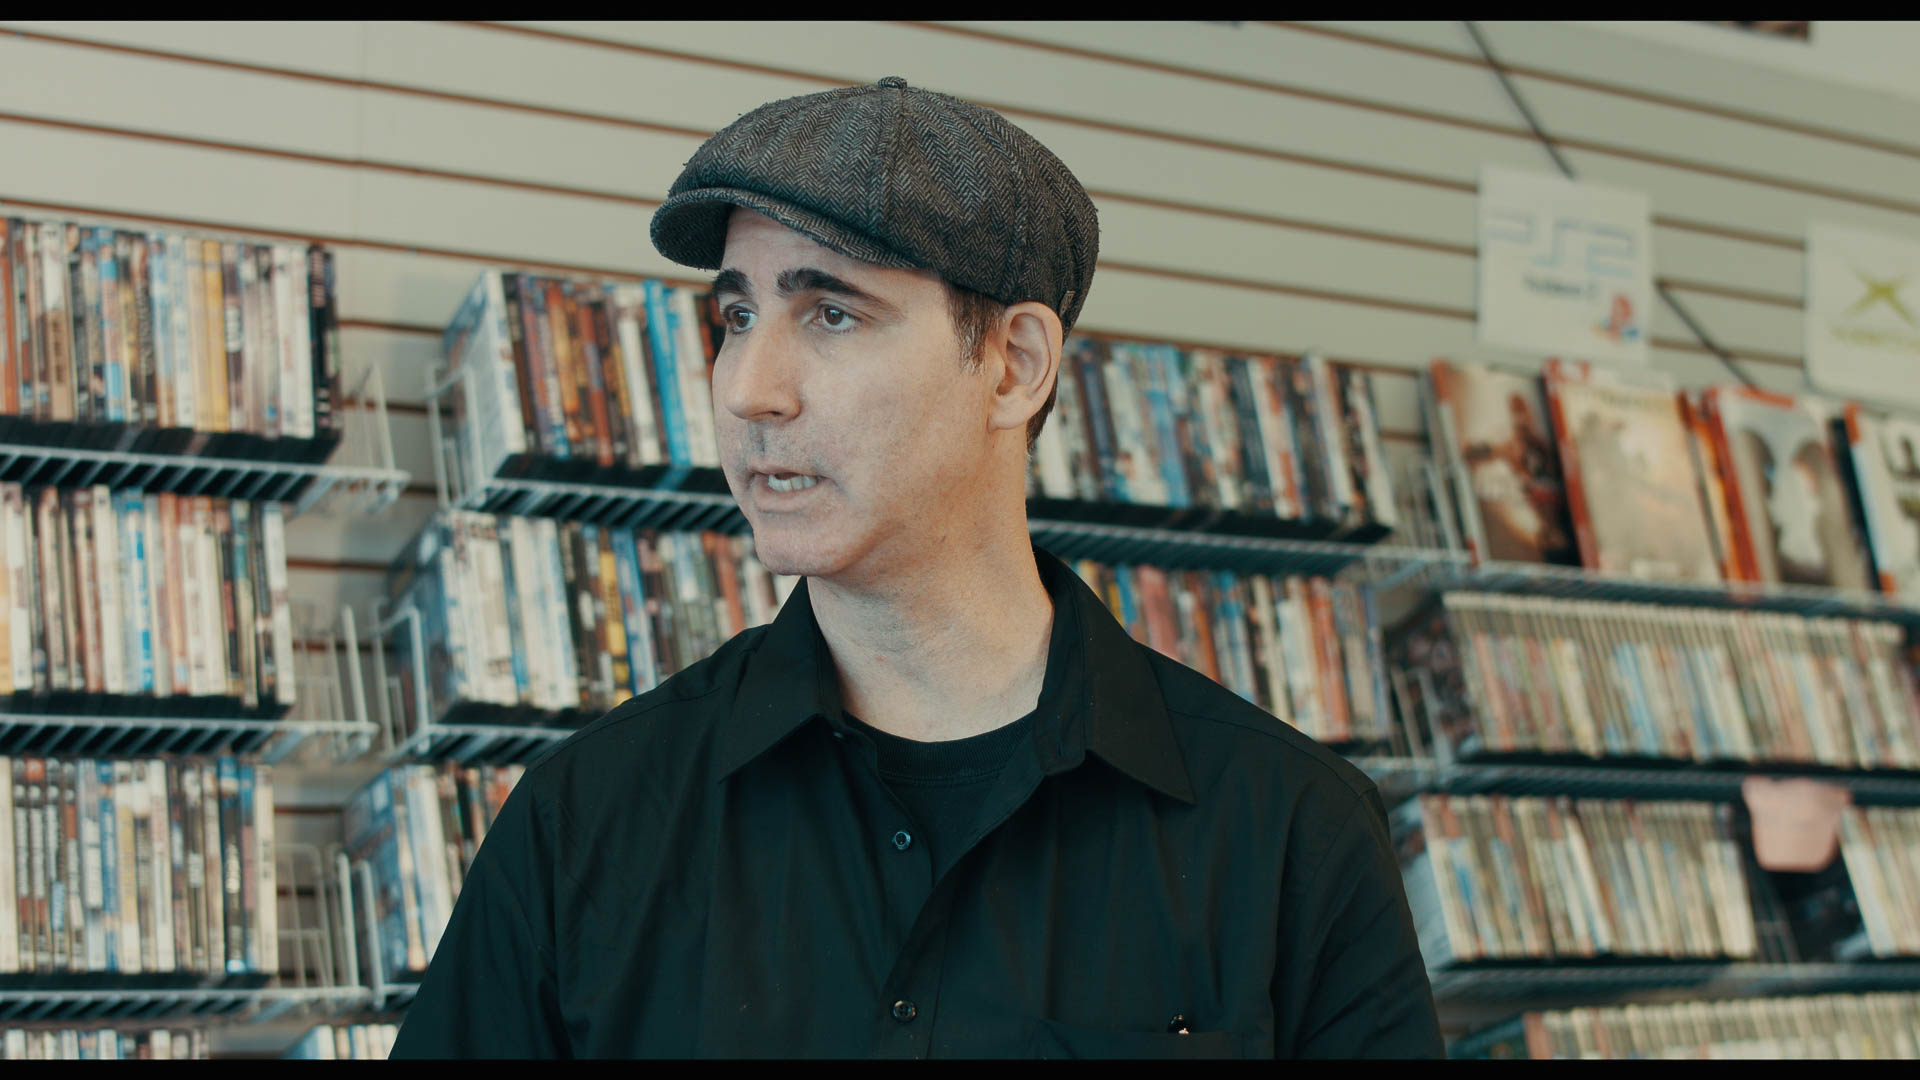 Spenny Sir John A. & The Curse of the Anti-Quenched